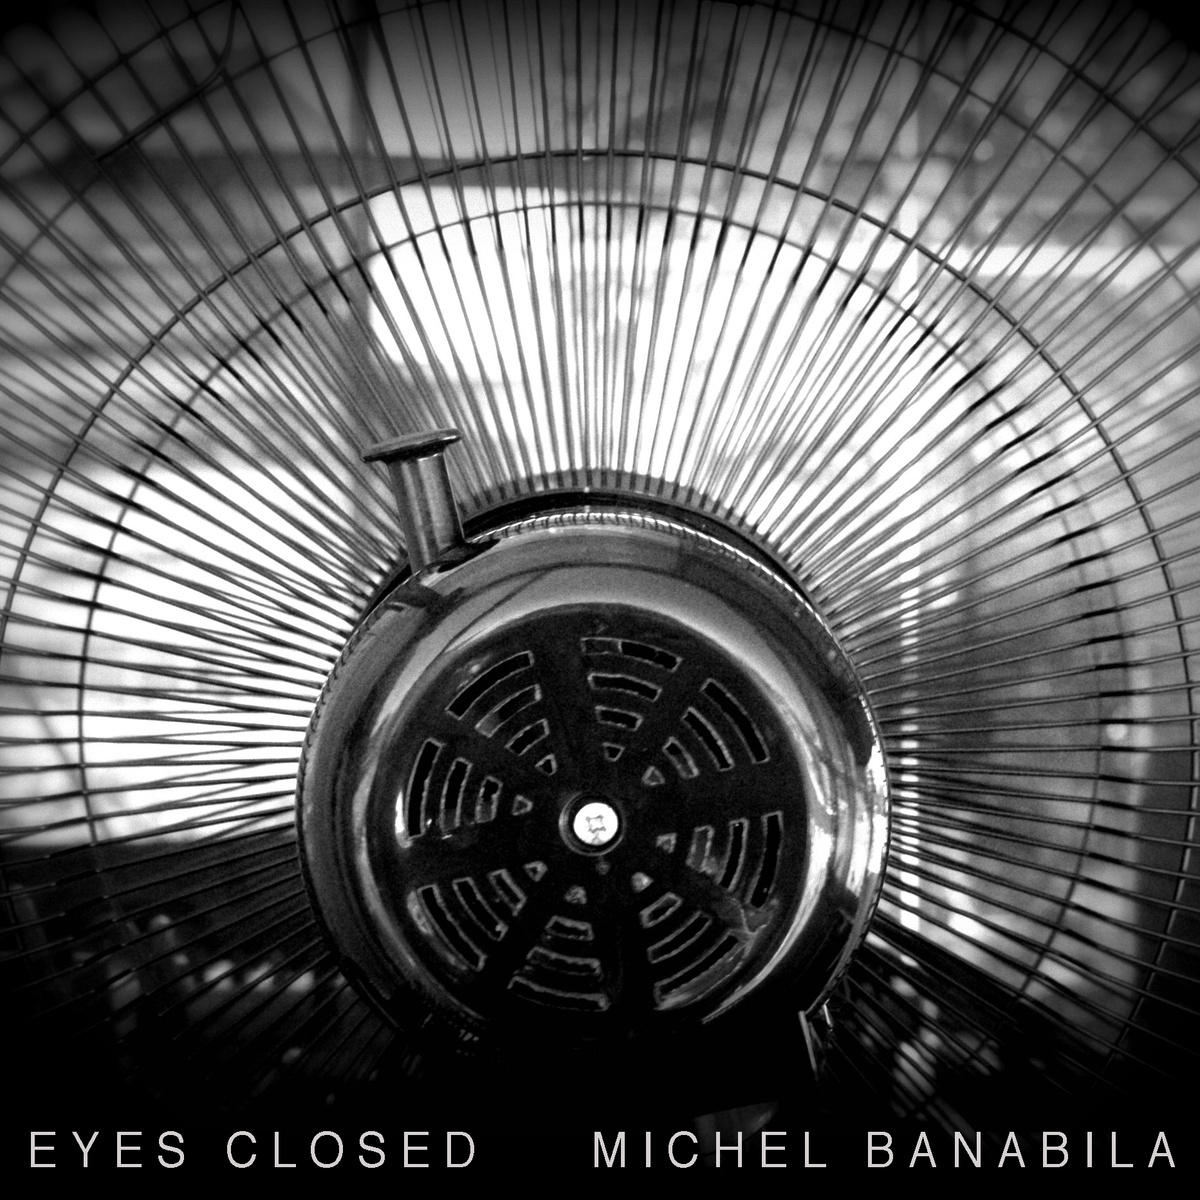 Eyes Closed - Michel Banabila